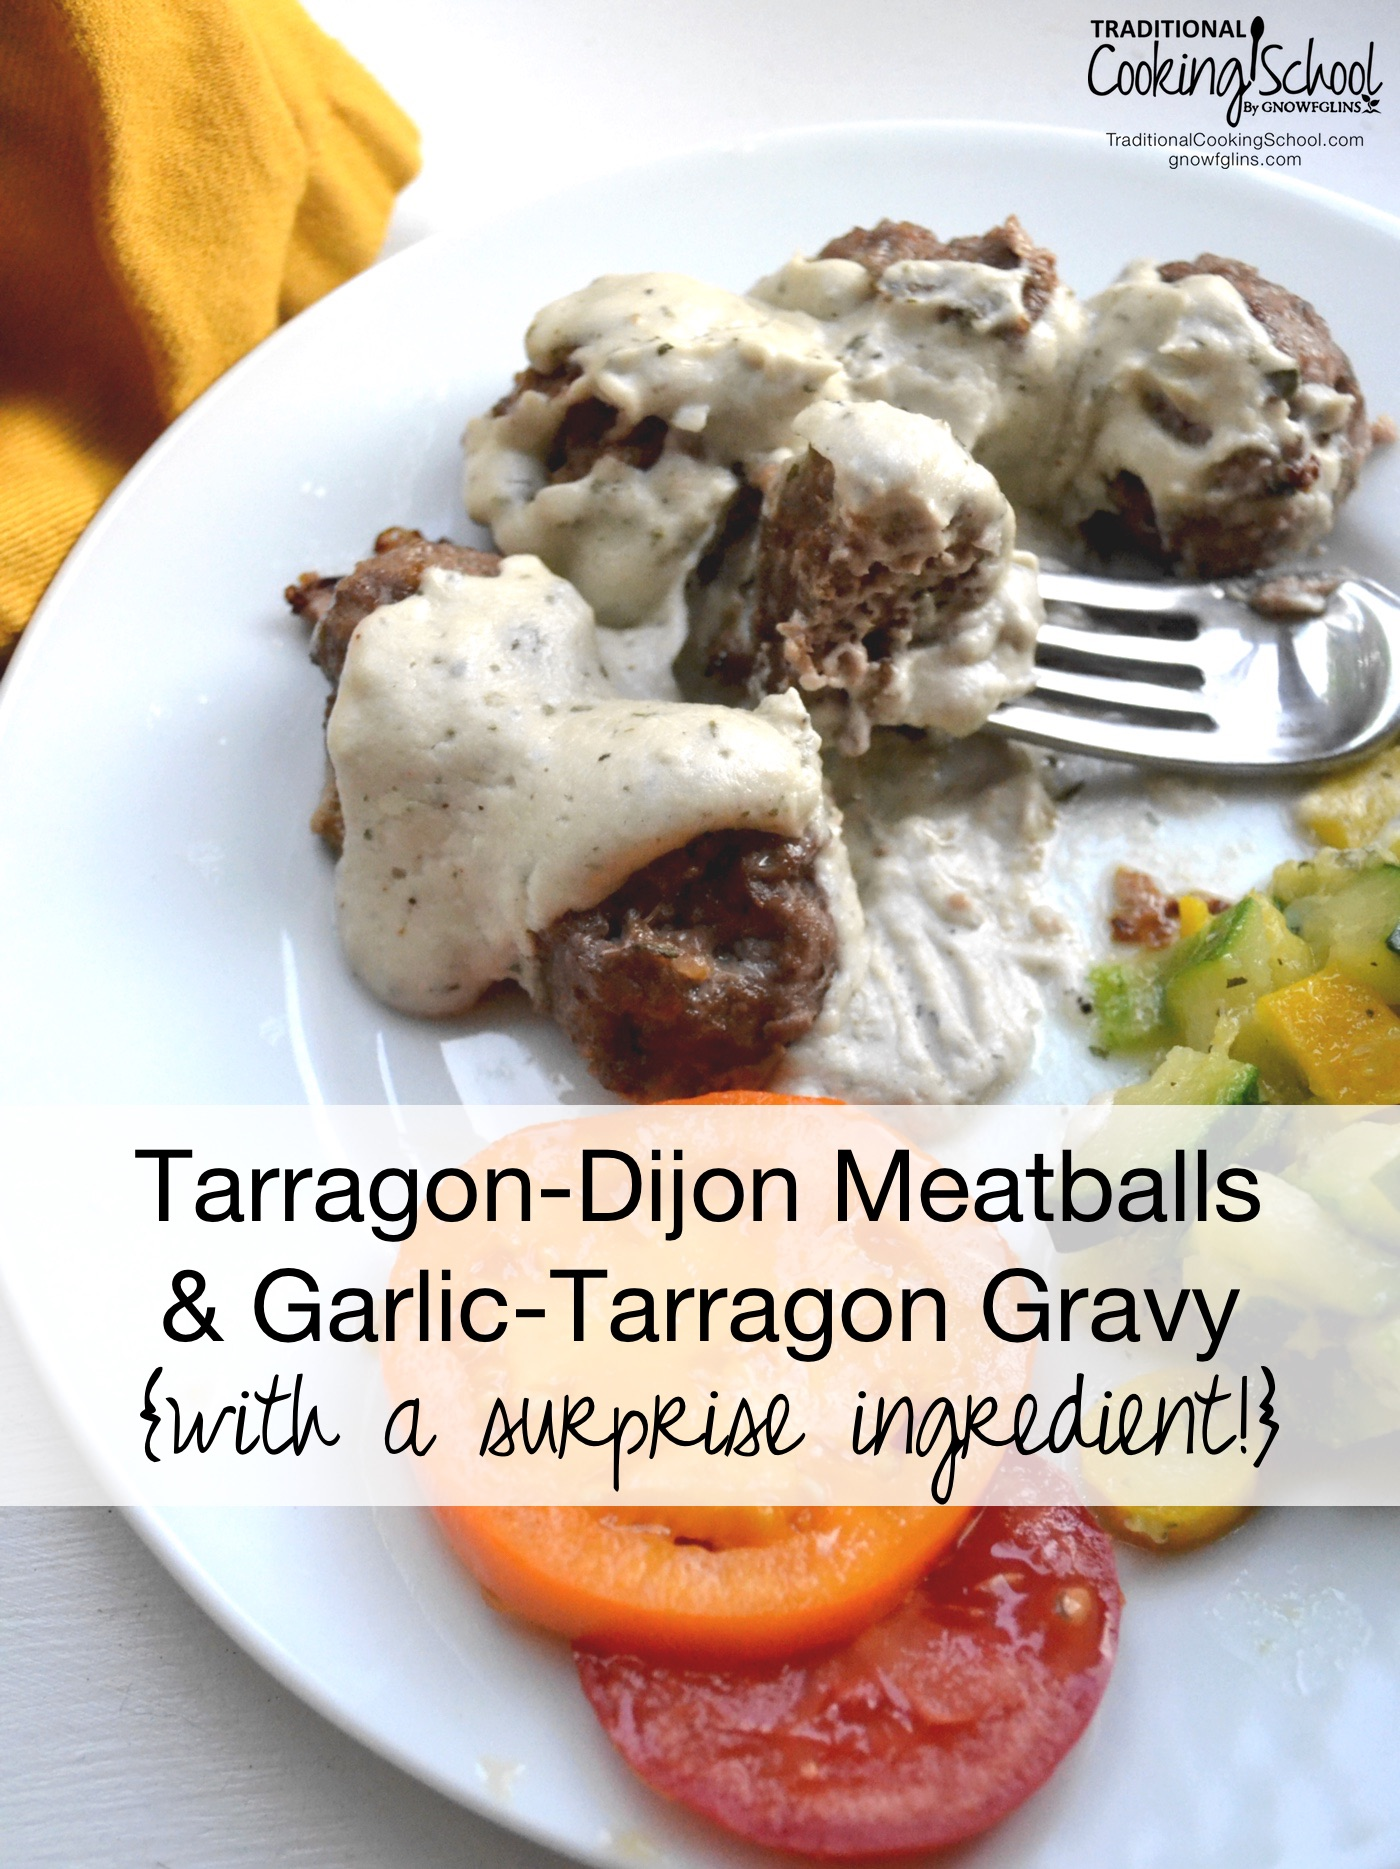 Tarragon-Dijon Meatballs {surprise ingredient!} | Meat smothered in gravy... it's the stuff of legend in Southern cuisine. These are a bit more refined, containing tarragon for lovely flavor and nutritional benefits as well as a surprise magnesium-rich ingredient! | TraditionalCookingSchool.com